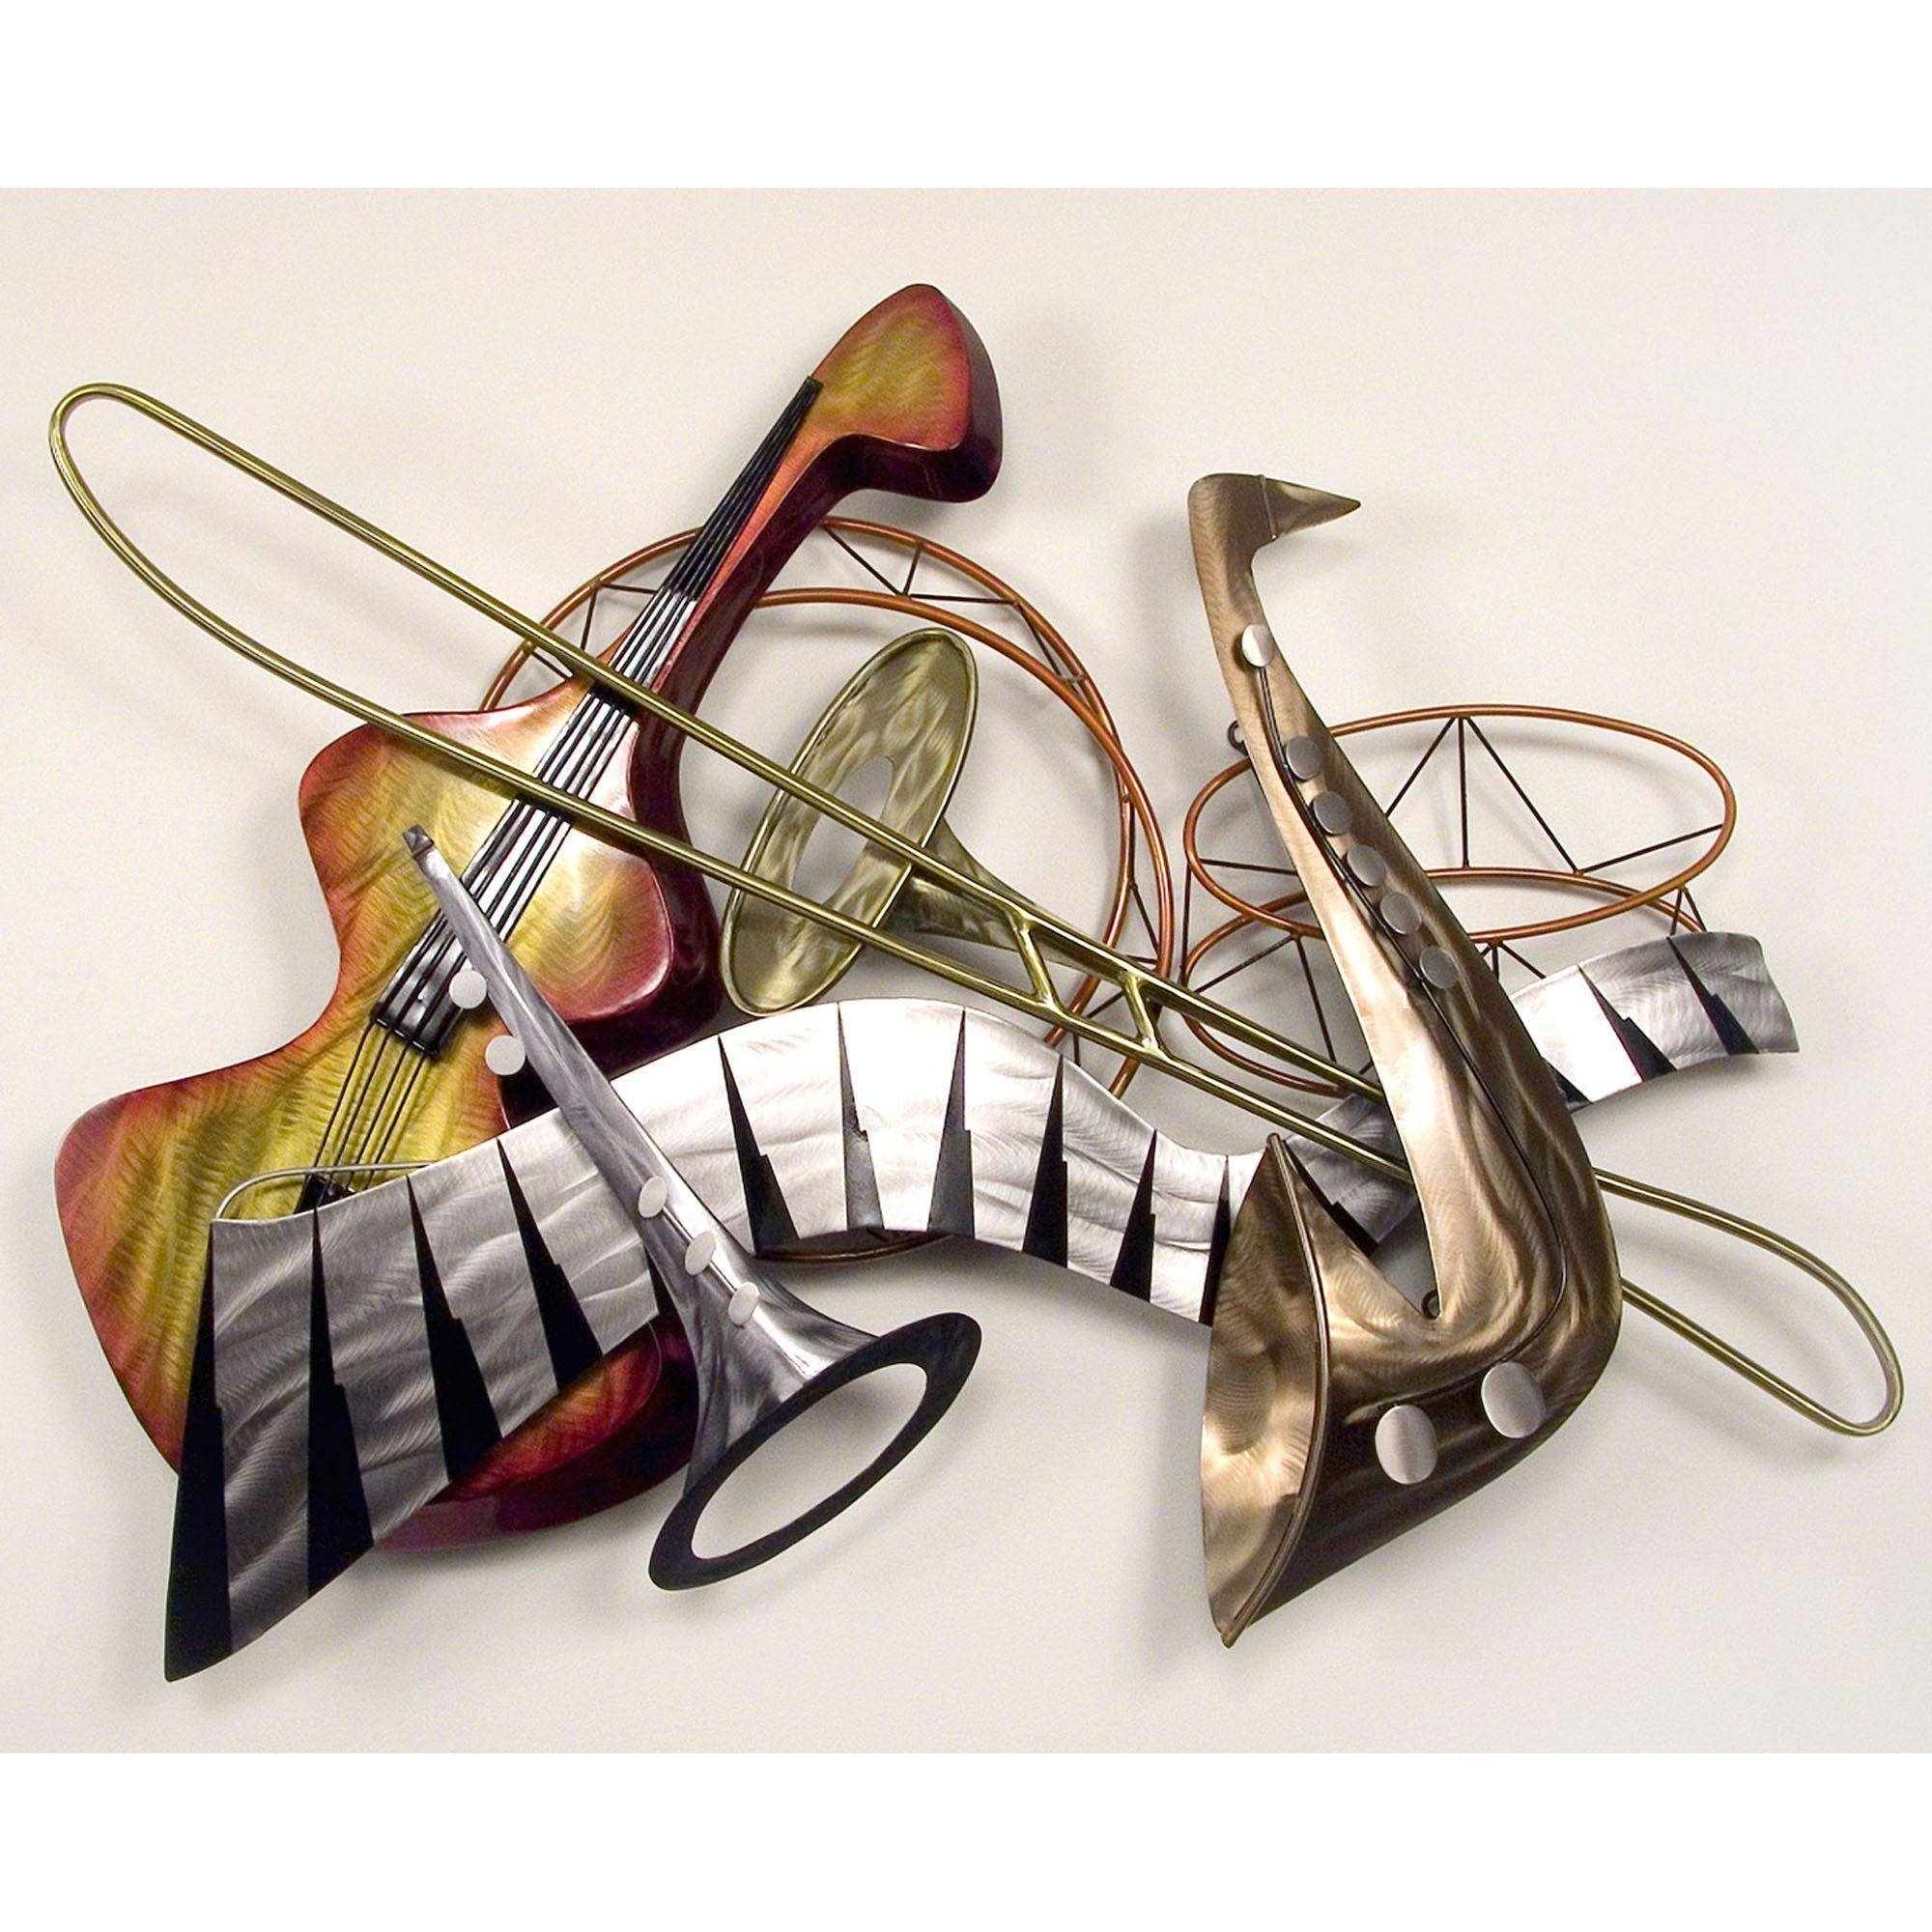 Music Metal Wall Sculptures | Touch Of Class With Best And Newest Jazz Metal Wall Art (View 10 of 20)